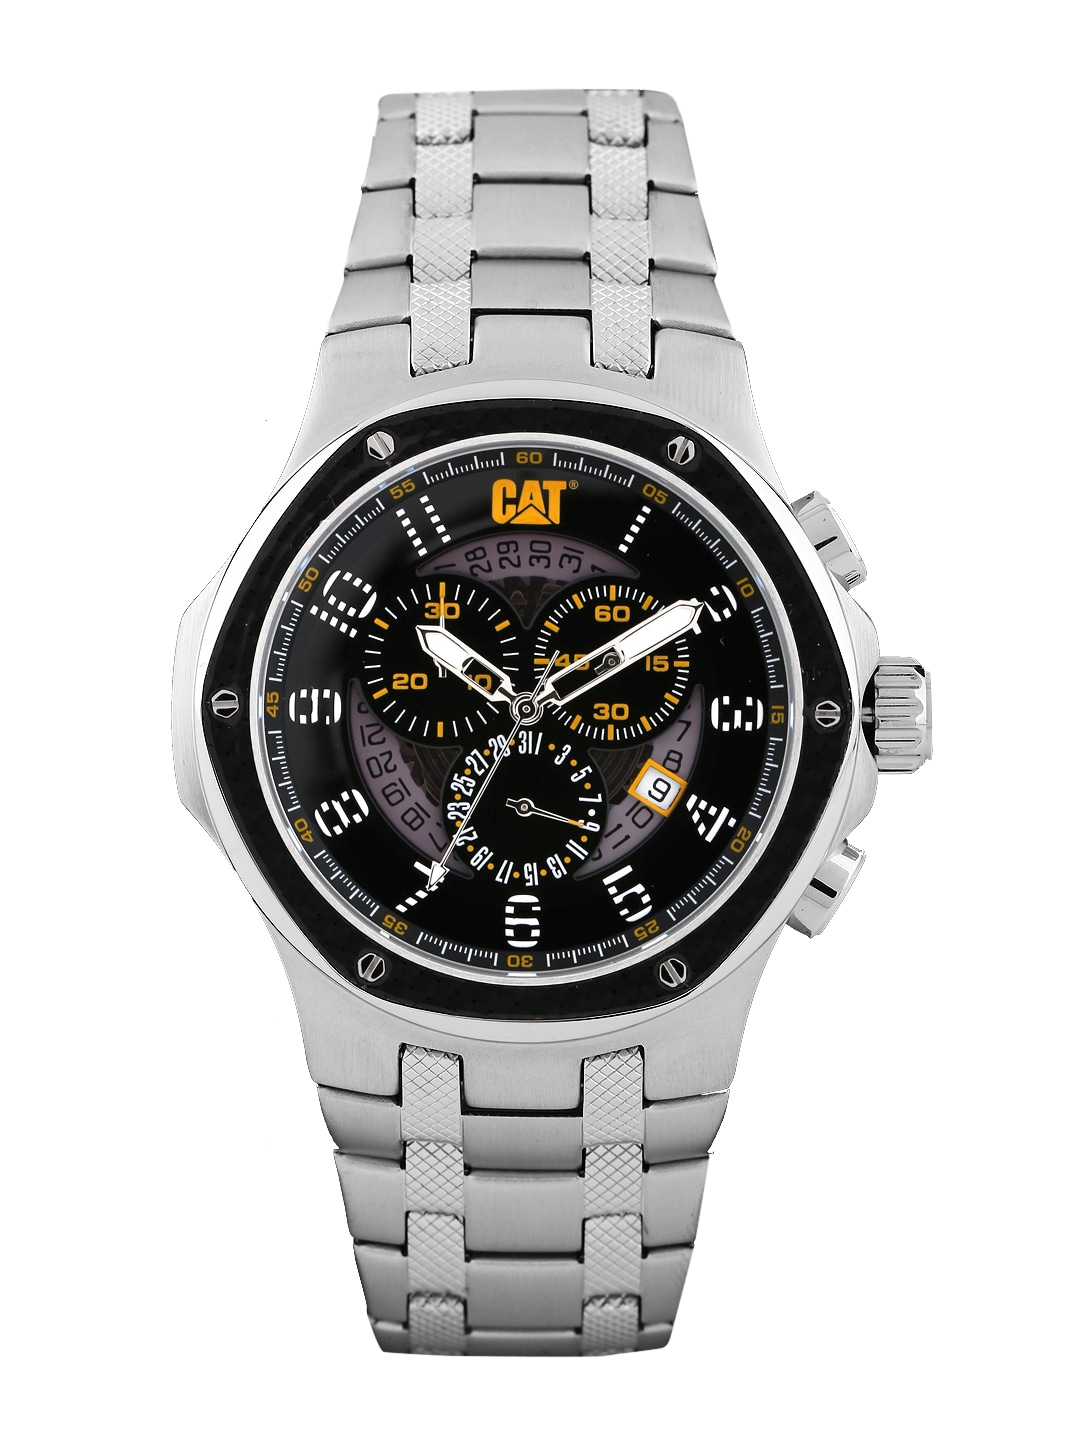 Cat CAT Men Black Dial Chronograph Watch A514311111